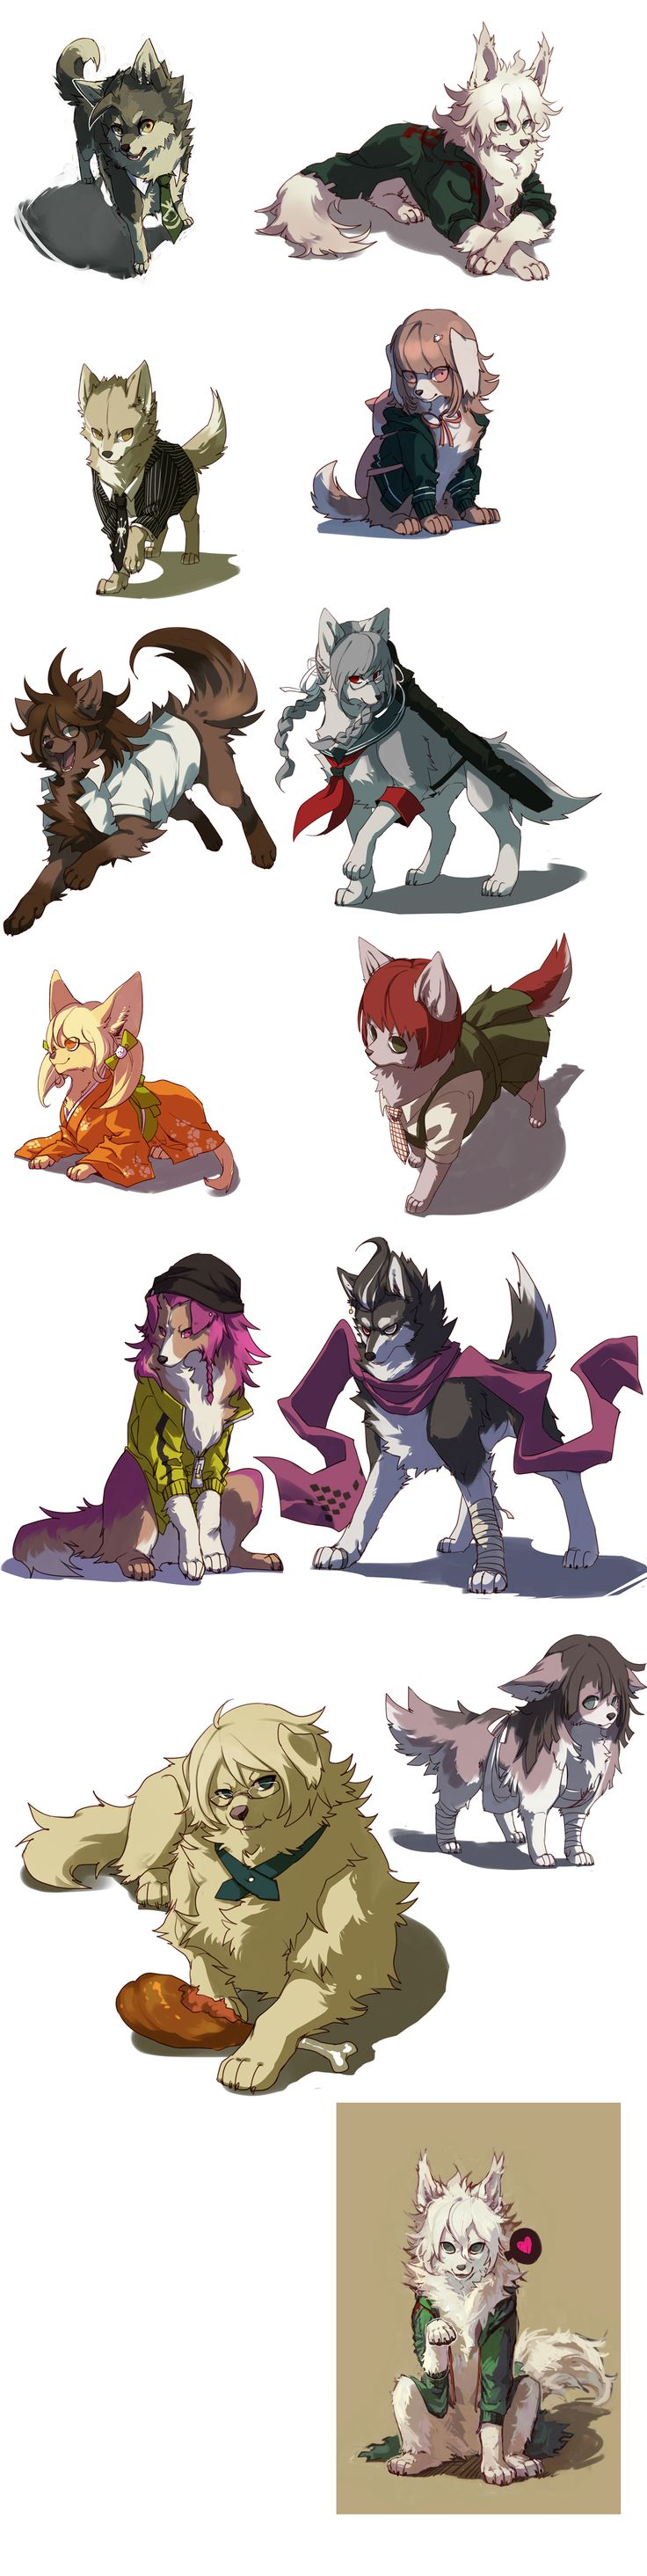 Dangan Dogs - By NoneNess. Love them all! But I miss Sonia.